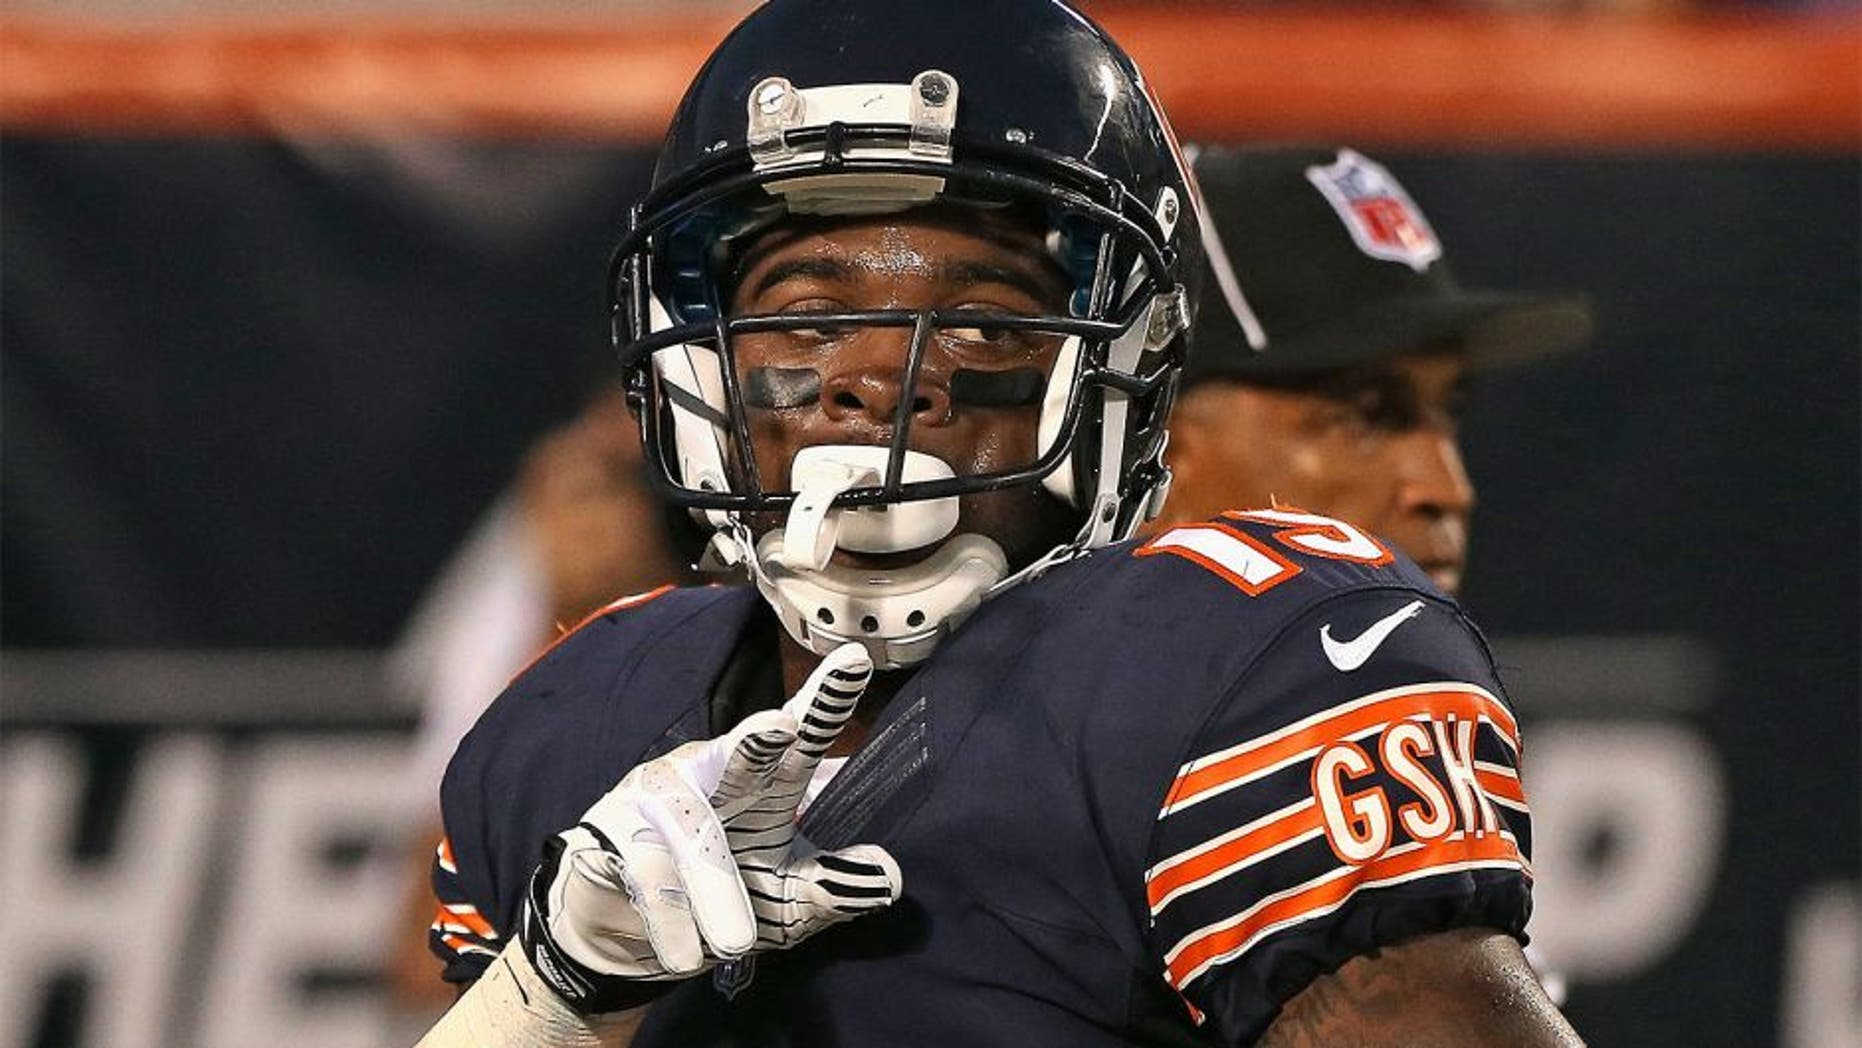 CHICAGO, IL - AUGUST 29: Joe Anderson #19 of the Chicago Bears celebrates a touchdown catch against the Cleveland Browns at Soldier Field on August 29, 2013 in Chicago, Illinois. The Browns defeated the Bears 18-16. (Photo by Jonathan Daniel/Getty Images) *** Local Caption *** Joe Anderson